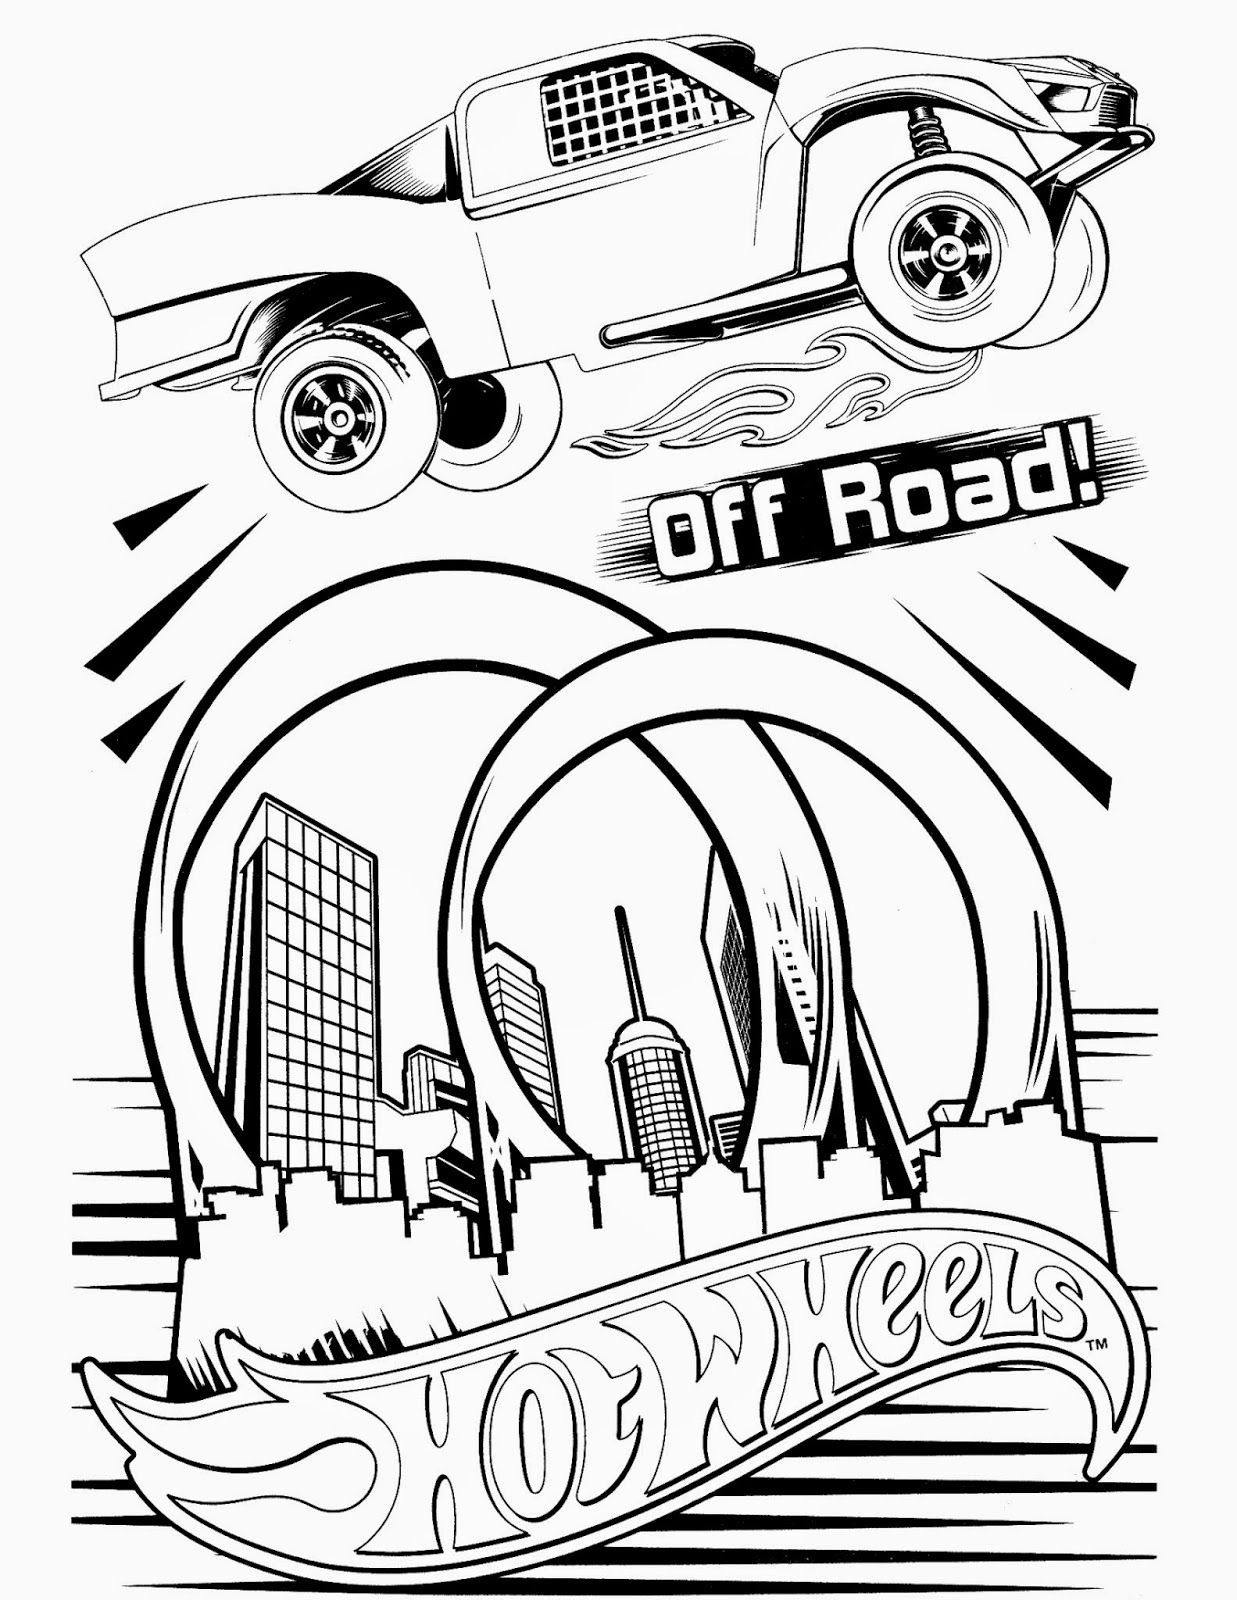 Online coloring hot wheels - Hot Wheels Coloring Pages Set 5 A Huge Collection Of Hot Wheels Coloring Pages